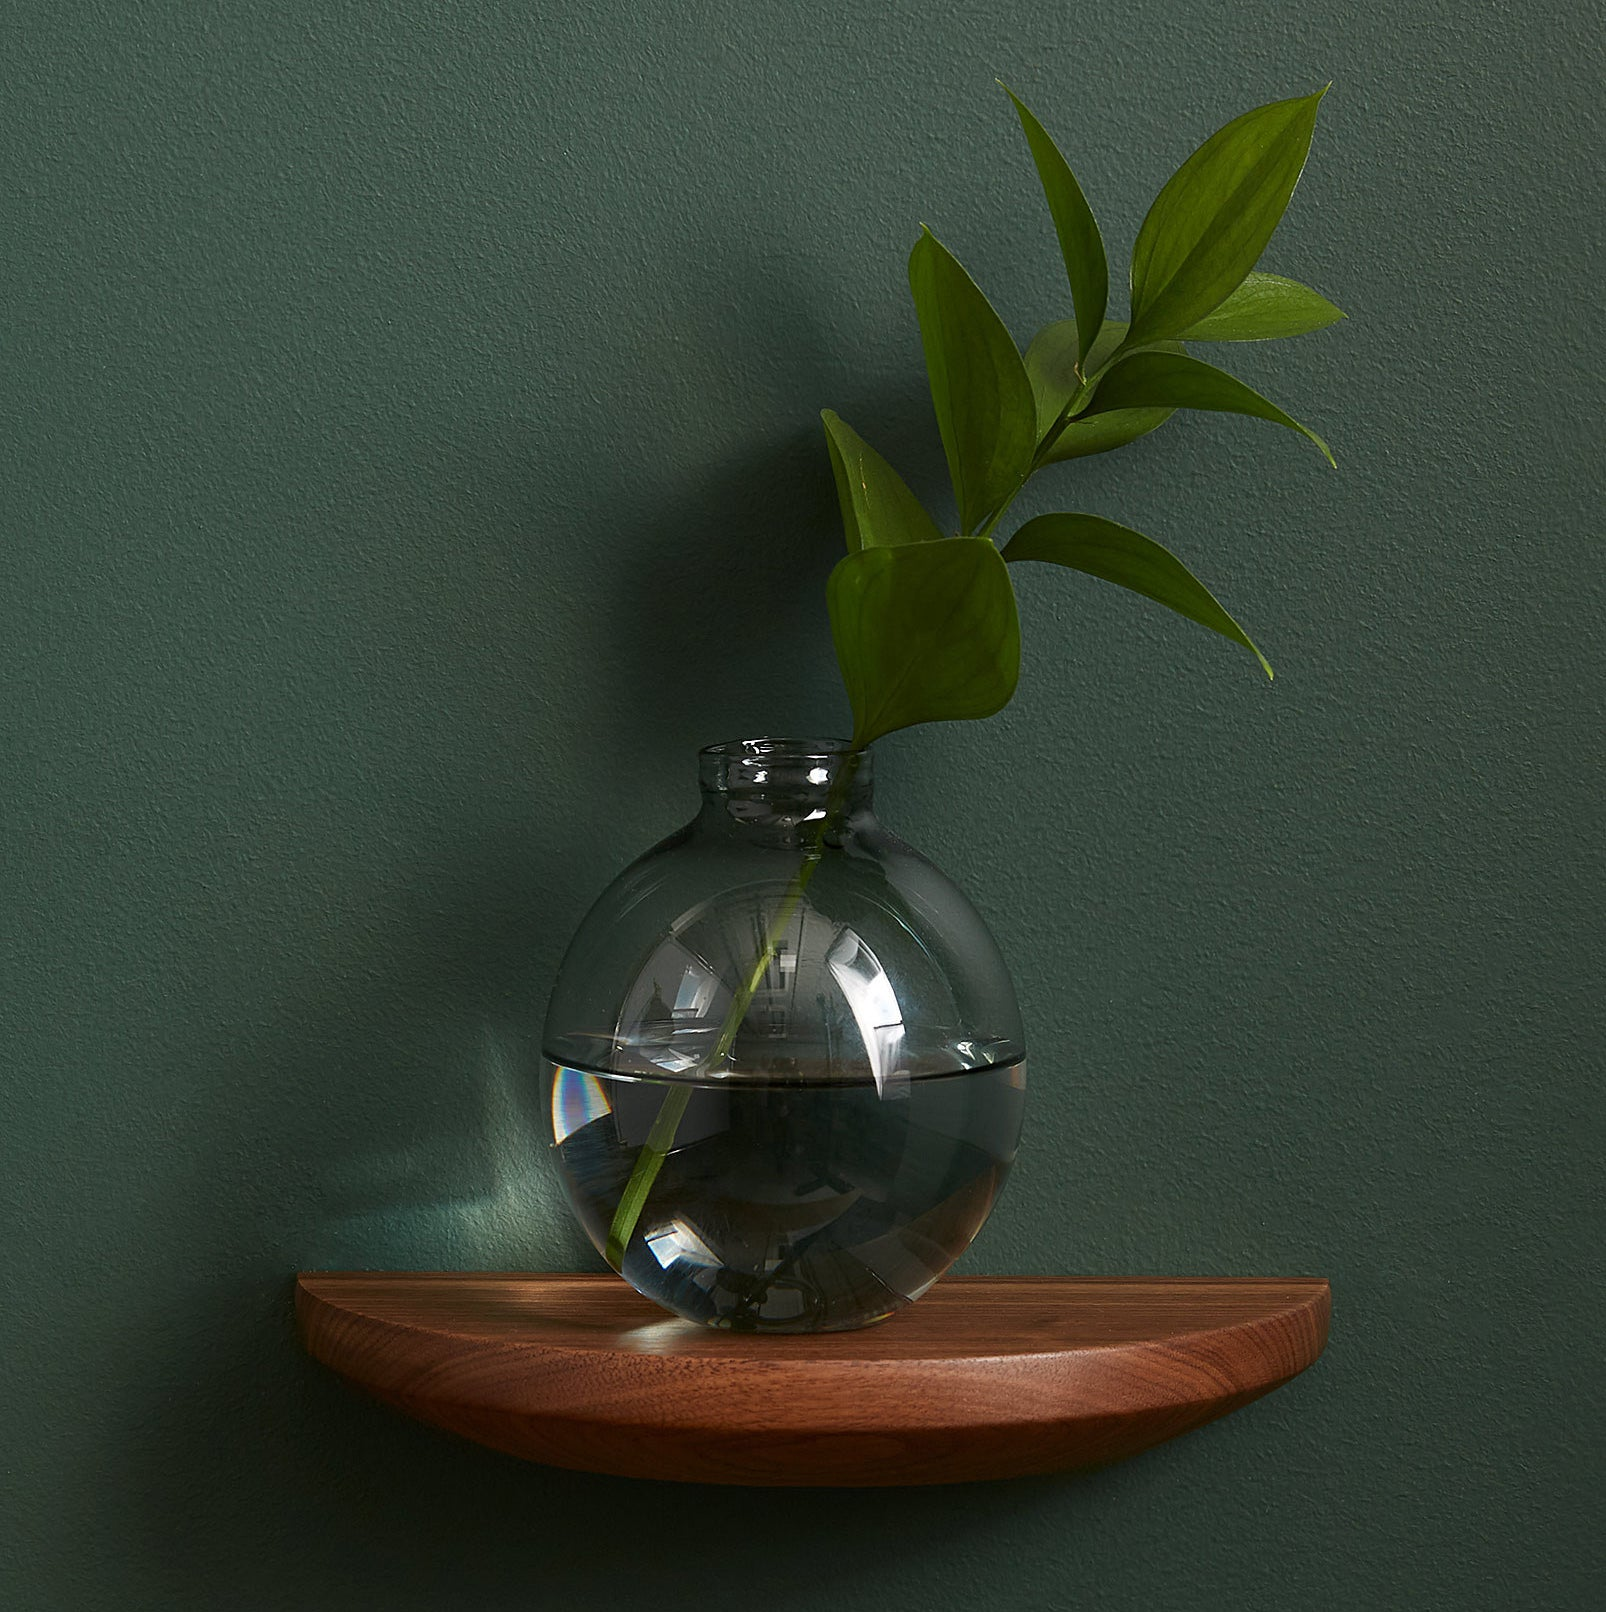 A round vase with a long leafy stem inside perched on the curved floating shelf